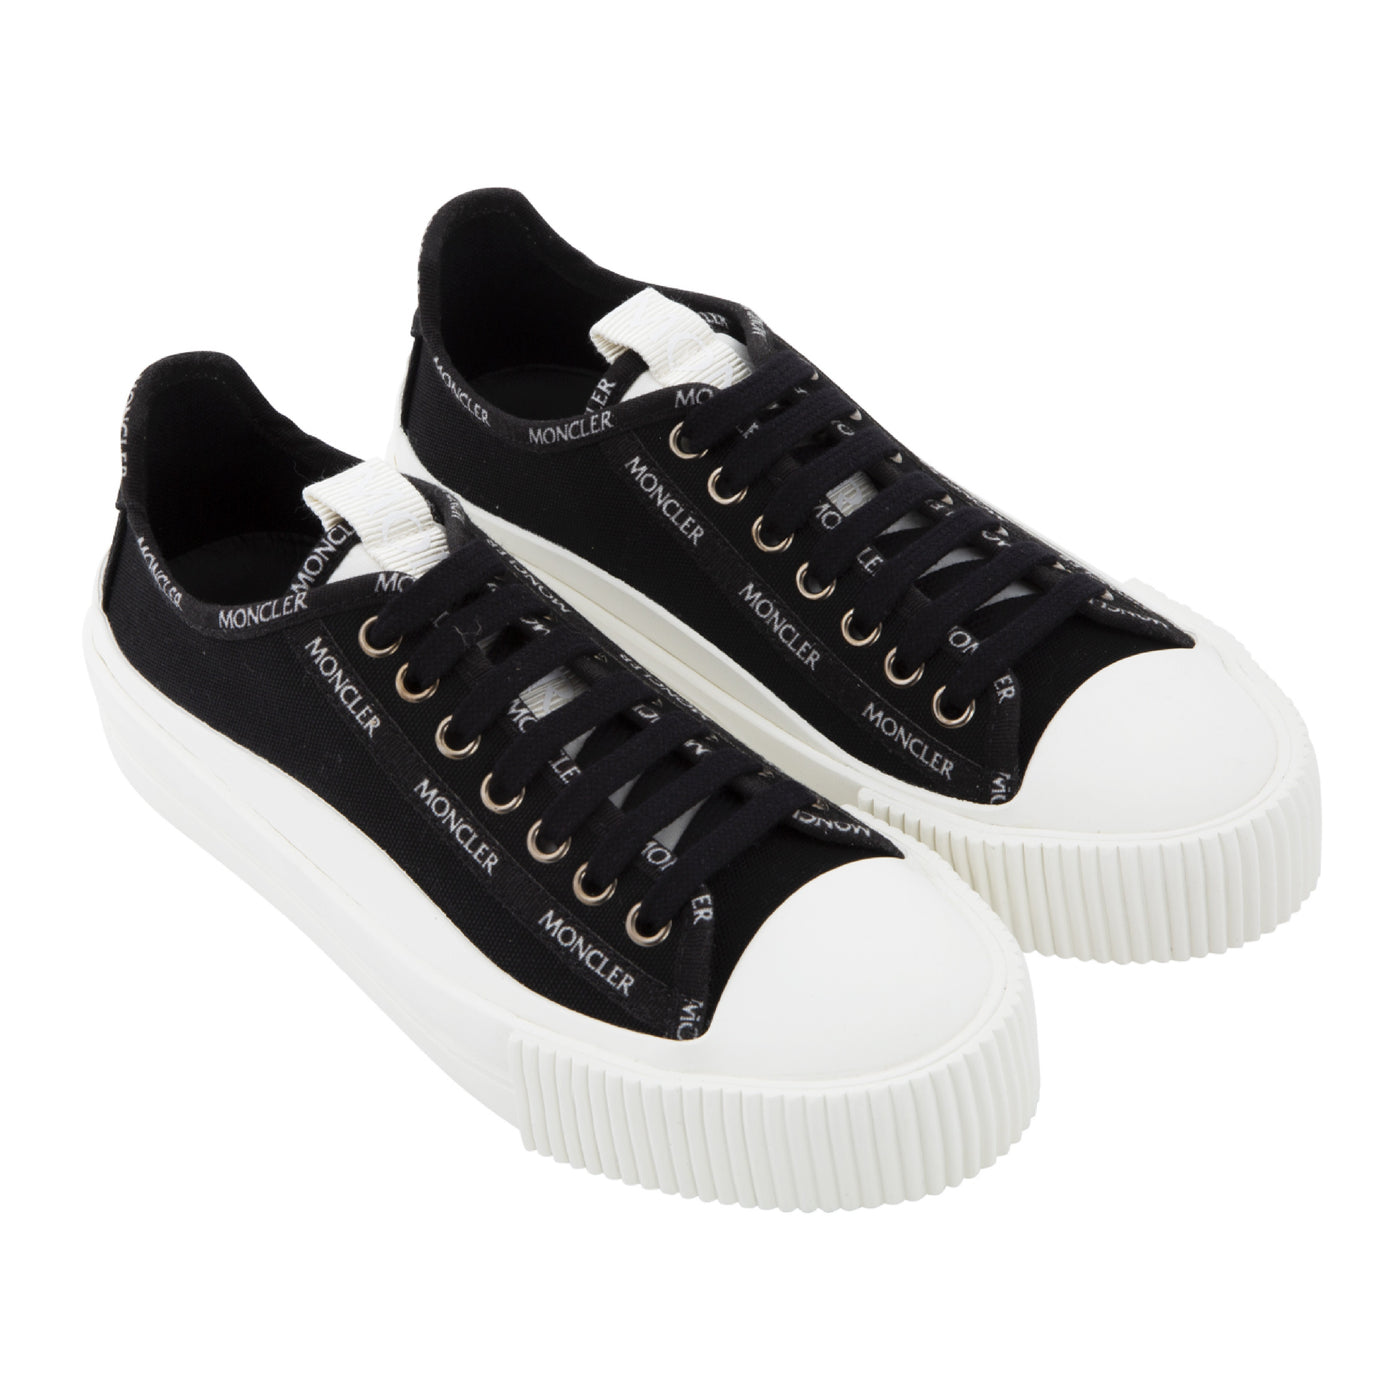 Load image into Gallery viewer, MONCLER GLISSIERE LOW TOP SNEAKERS BLACK